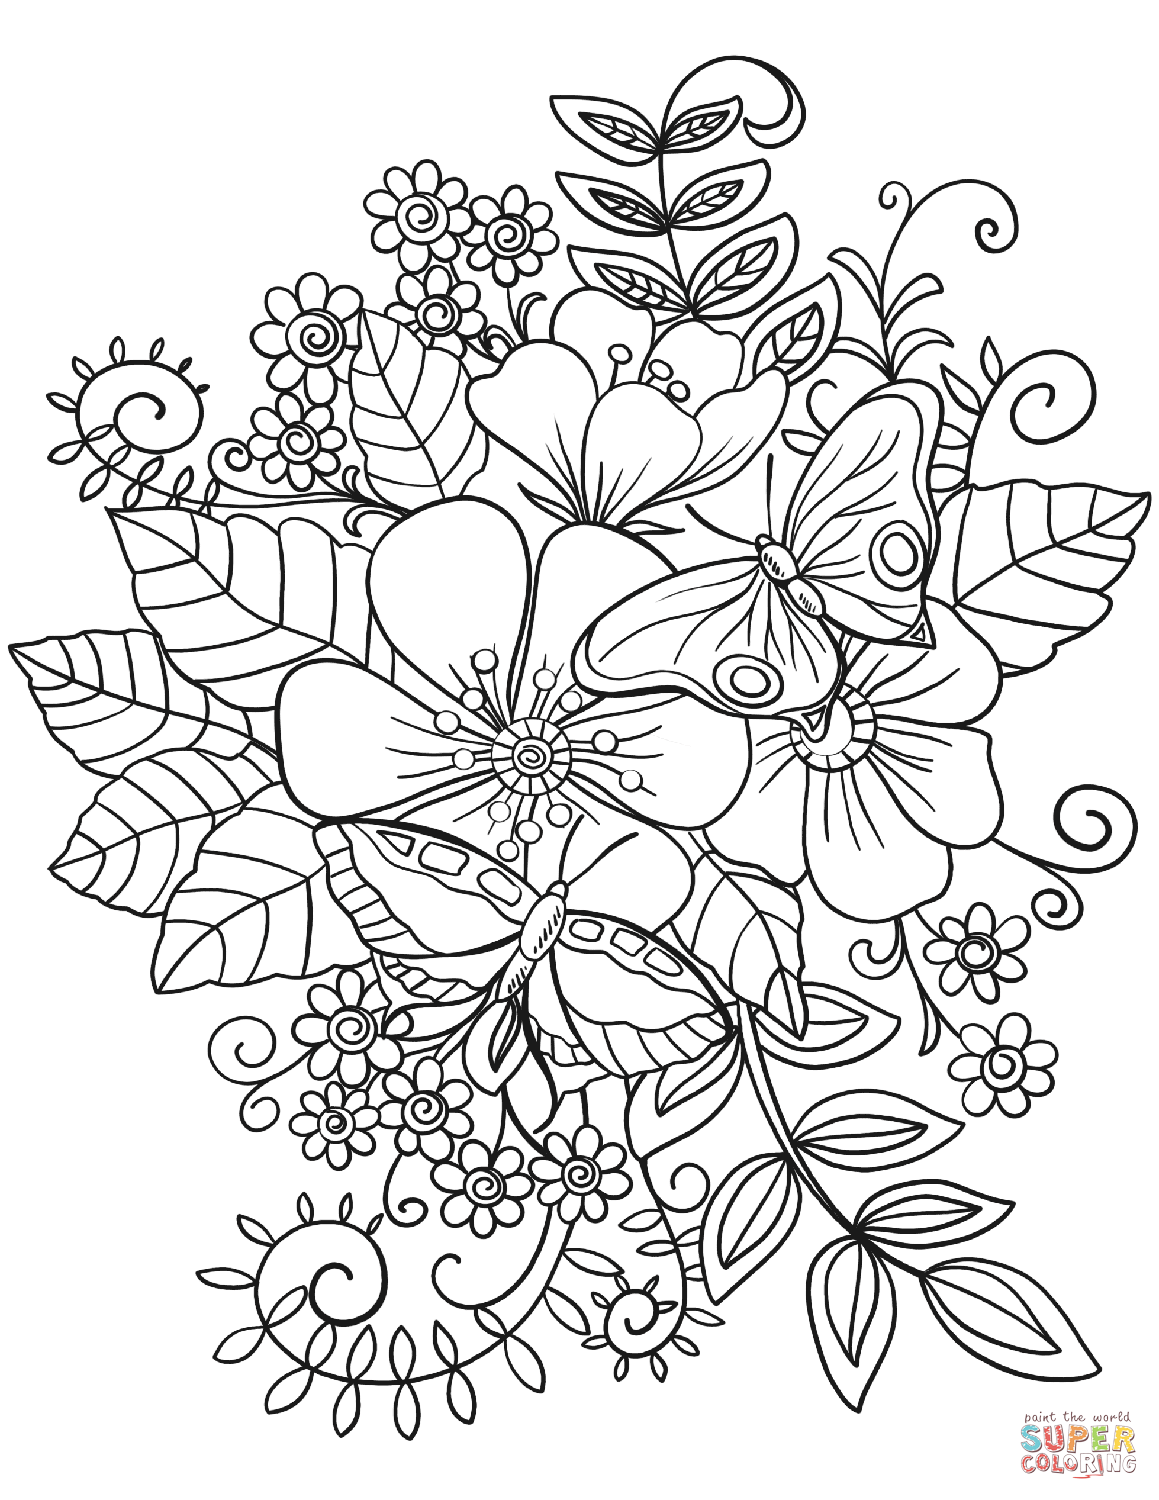 Butterflies And Flowers Drawing at GetDrawings.com | Free for ...